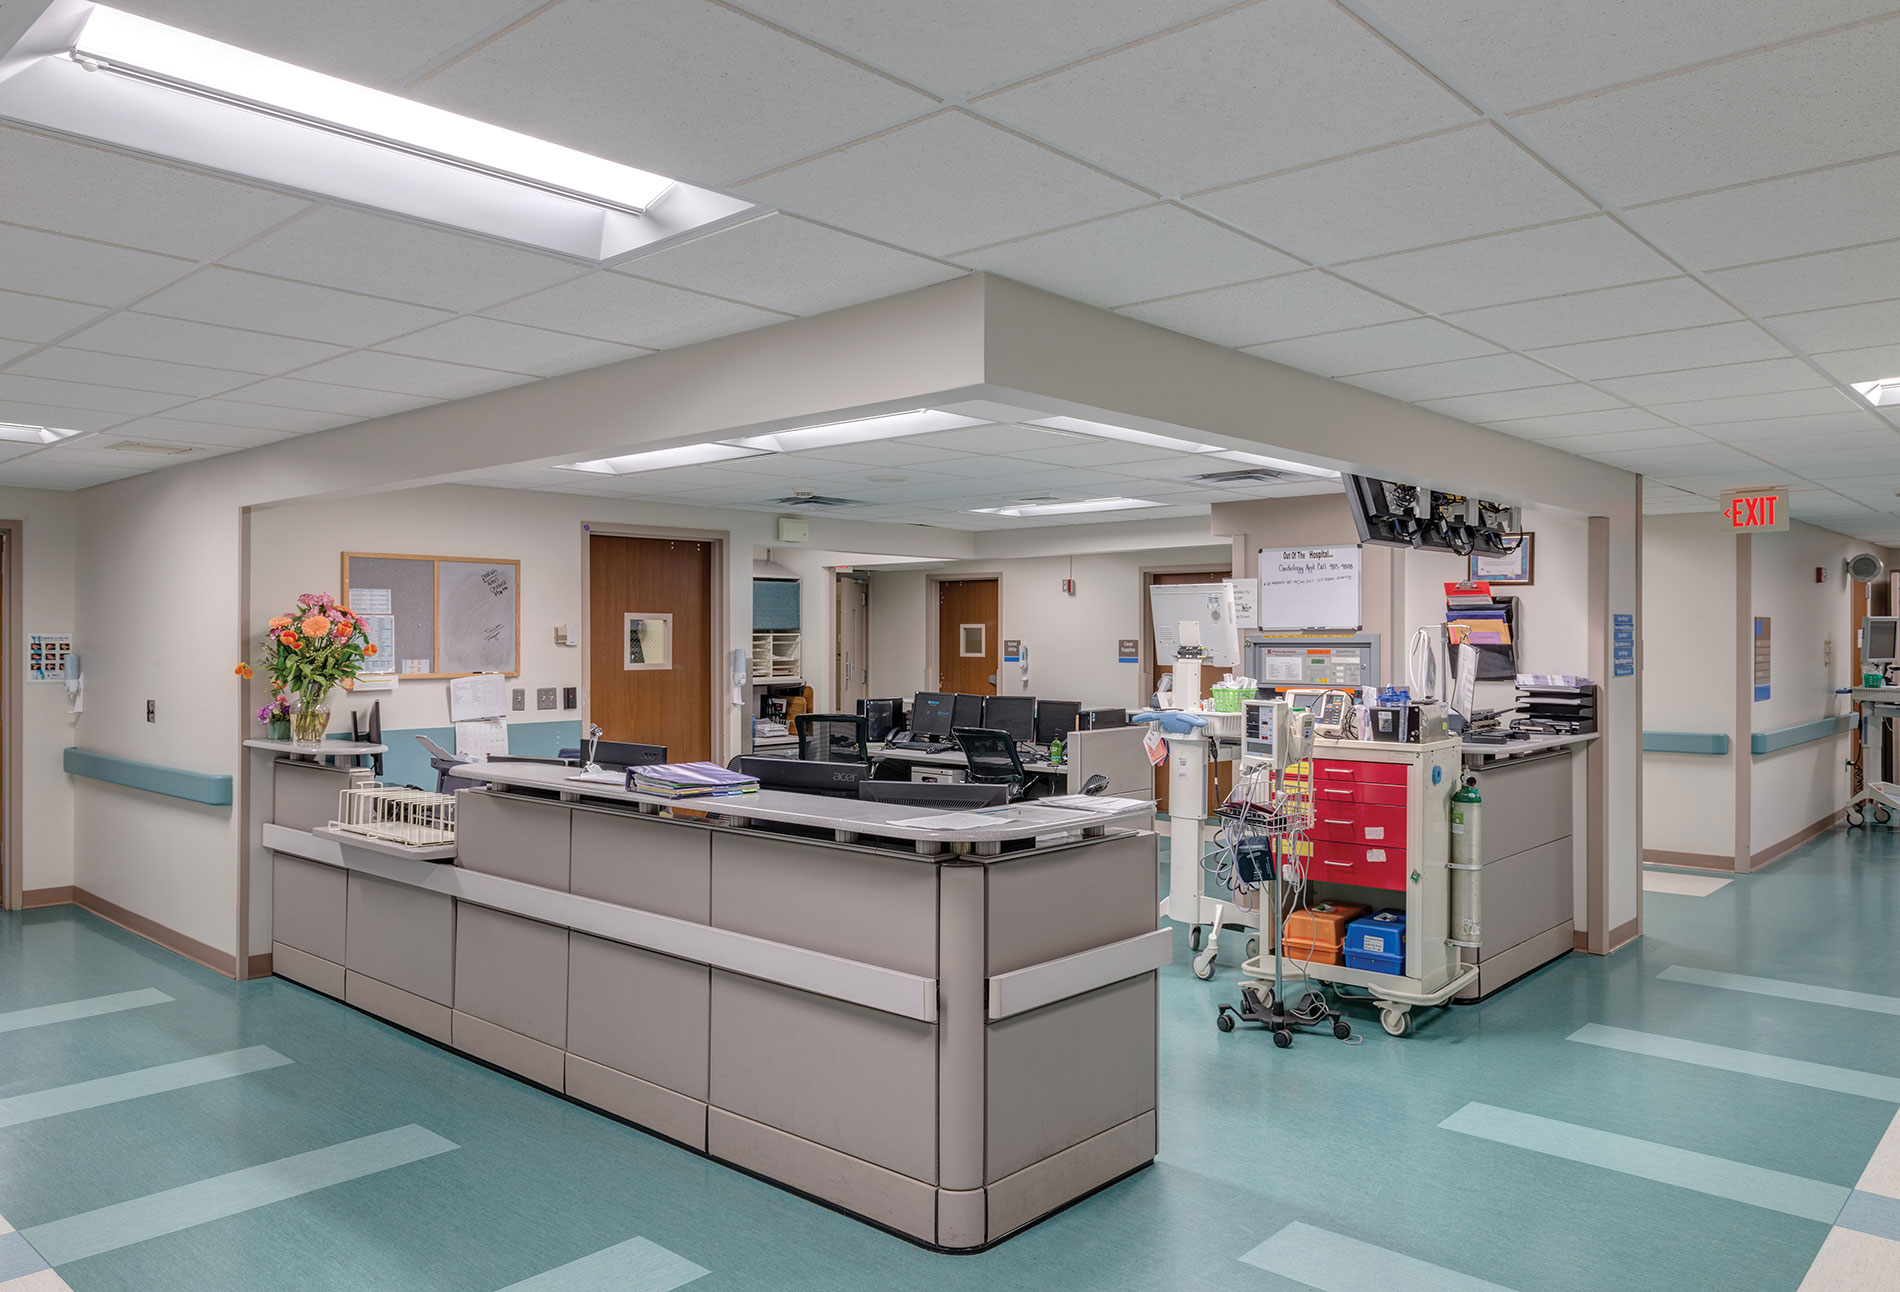 The two goals of lighting design are to provide comfort and calm for patients and keep staff sharp and focused. This nursing station at McLaren Health Care hospital in Port Huron, Mich., displays lighting needed for 24/7 staff productivity.